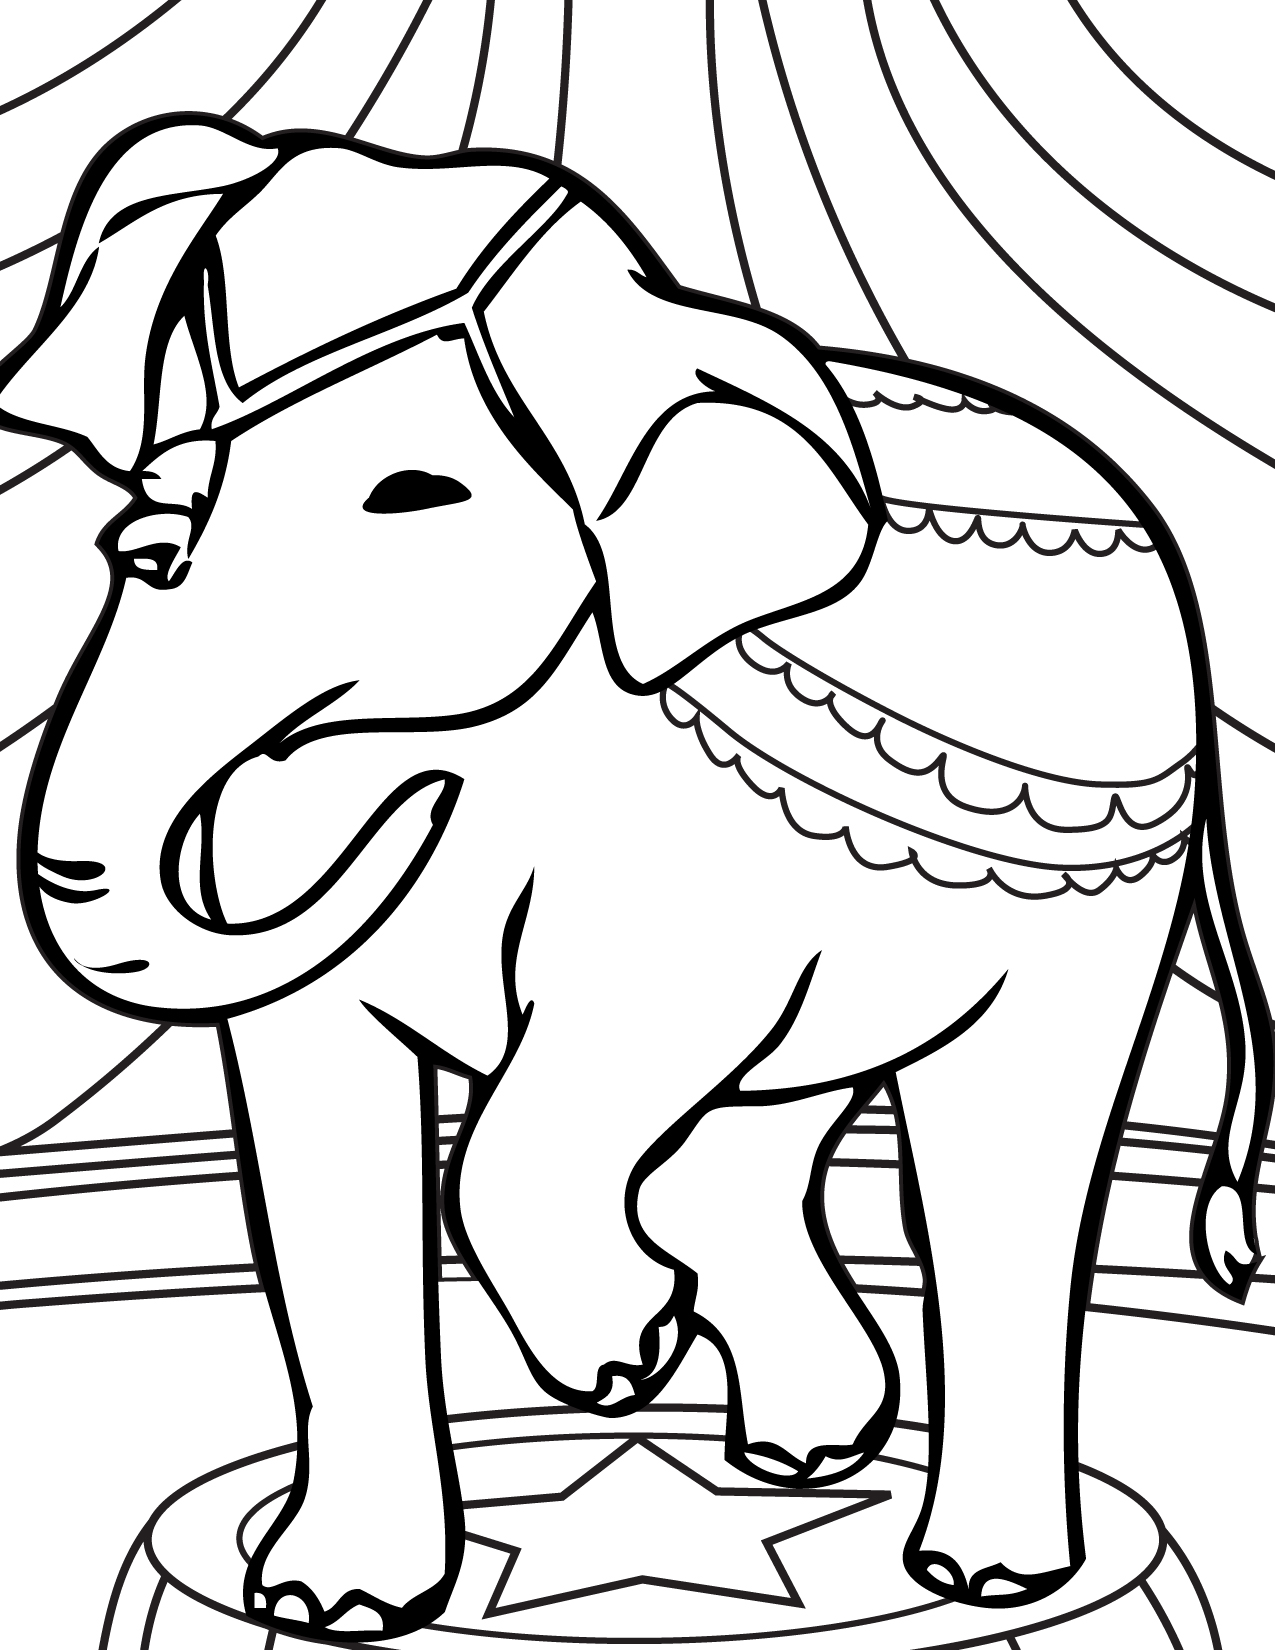 Circus Animals Coloring Pages 56 | Free Printable Coloring Pages ... | 1650x1275